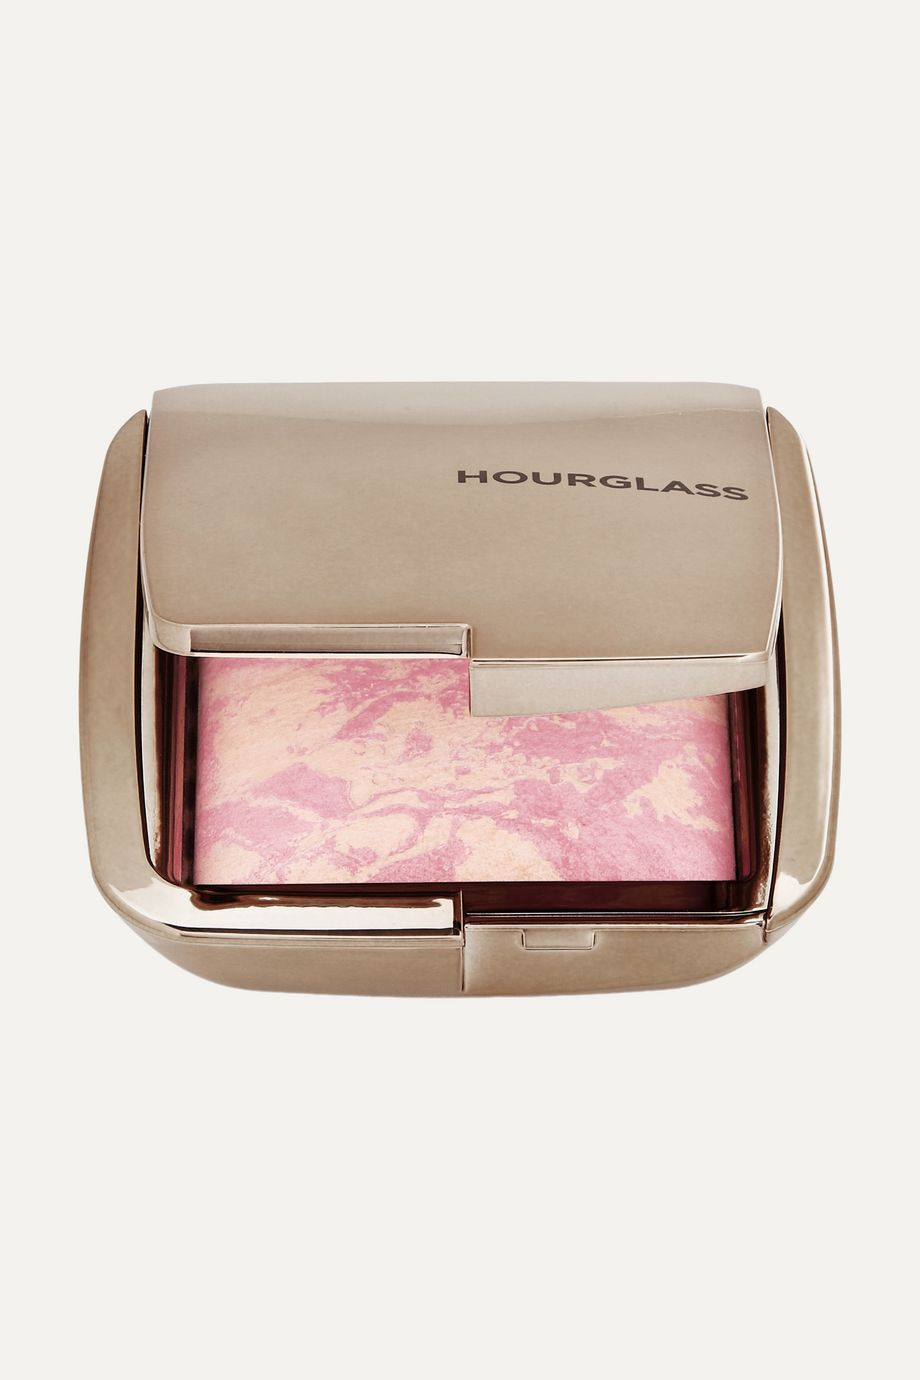 Hourglass Blush Ambient Lighting, Ethereal Glow